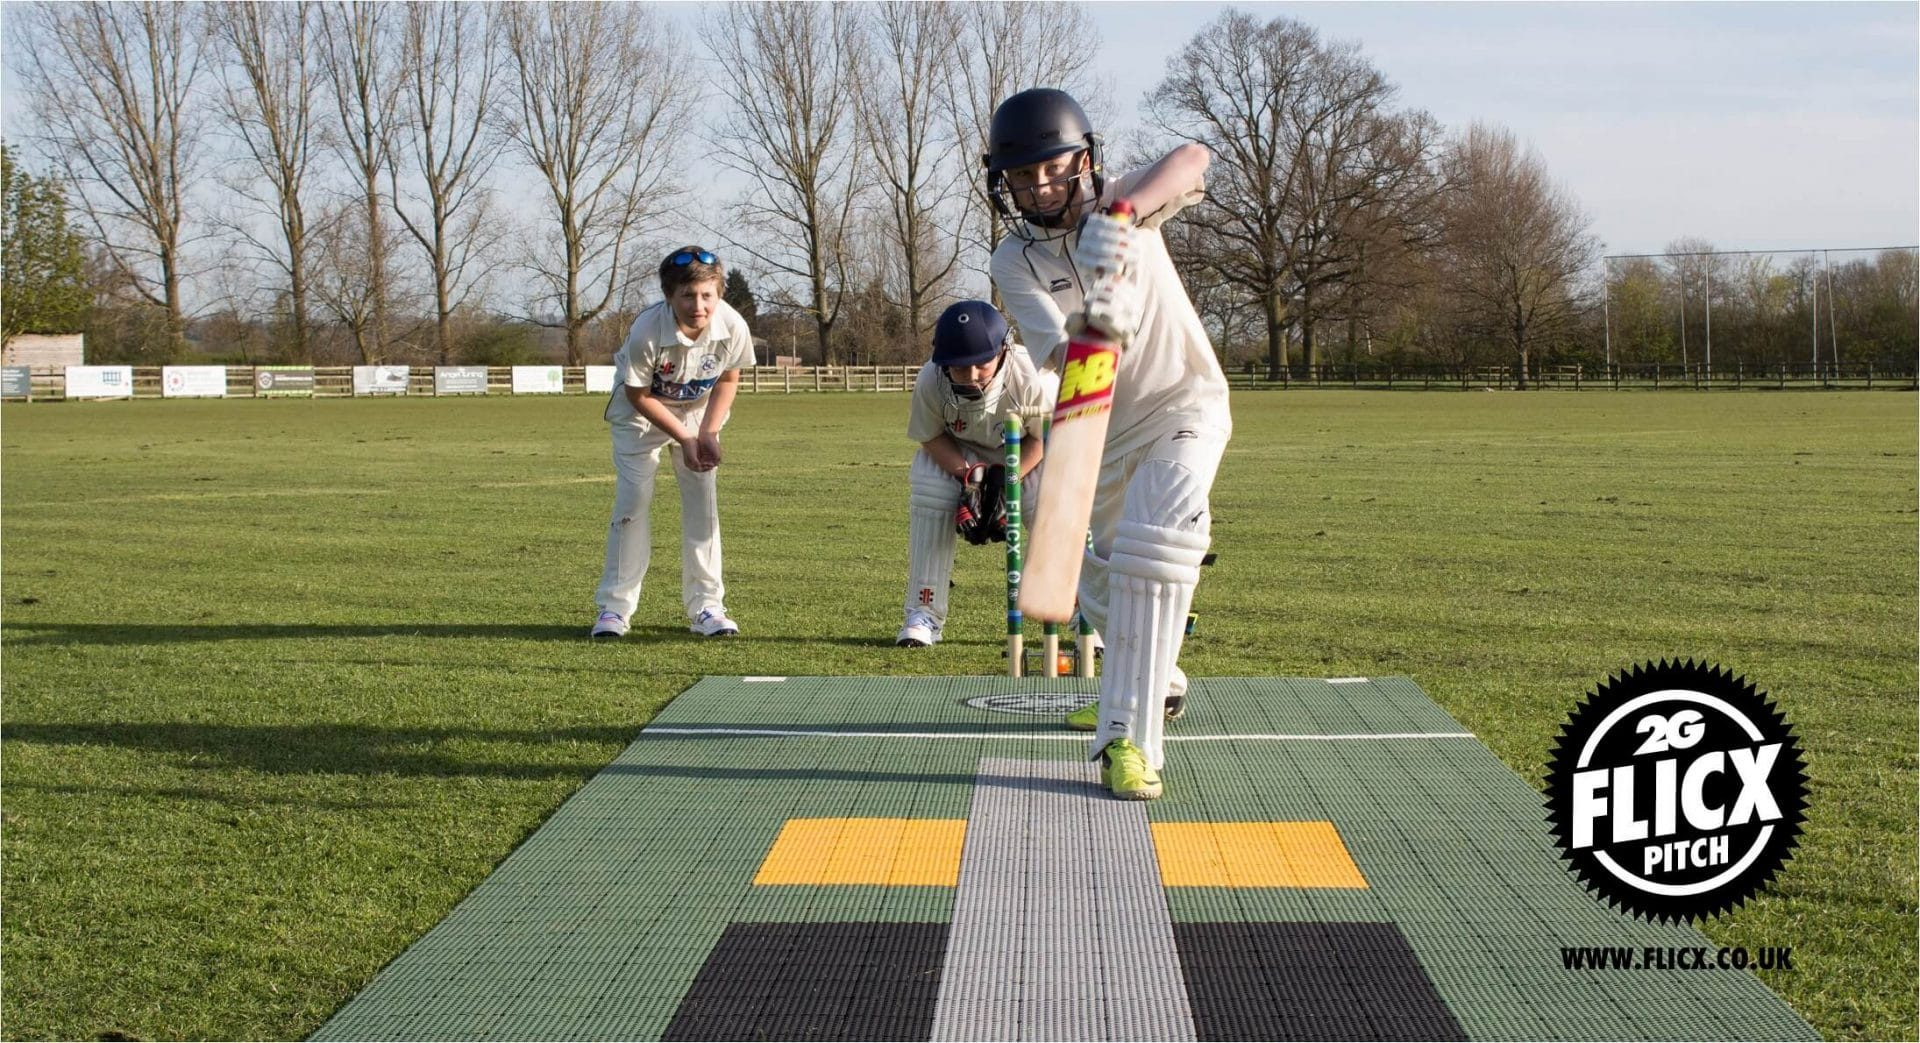 5 reasons your cricket club will LOVE the 2G Flicx Pitch